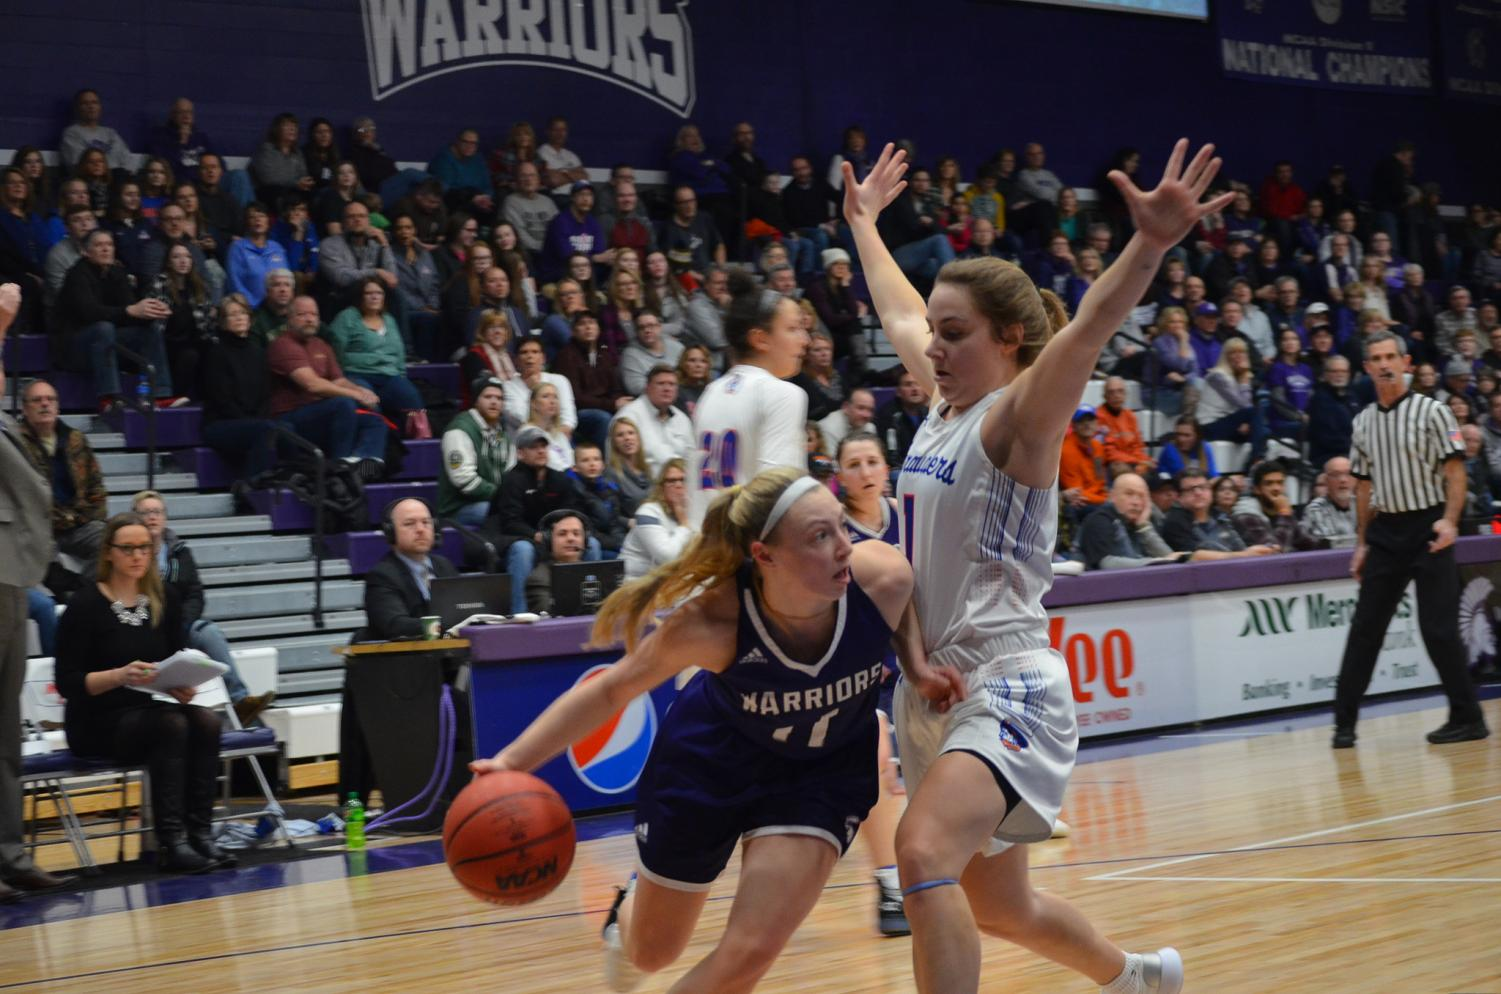 Sophomore Emily Kieck weaves around a University of Mary player on Saturday, February 9 in McCown Gymnasium. The Warriors took home two wins, scoring 84-46 on Friday and 57-54 on Saturday.